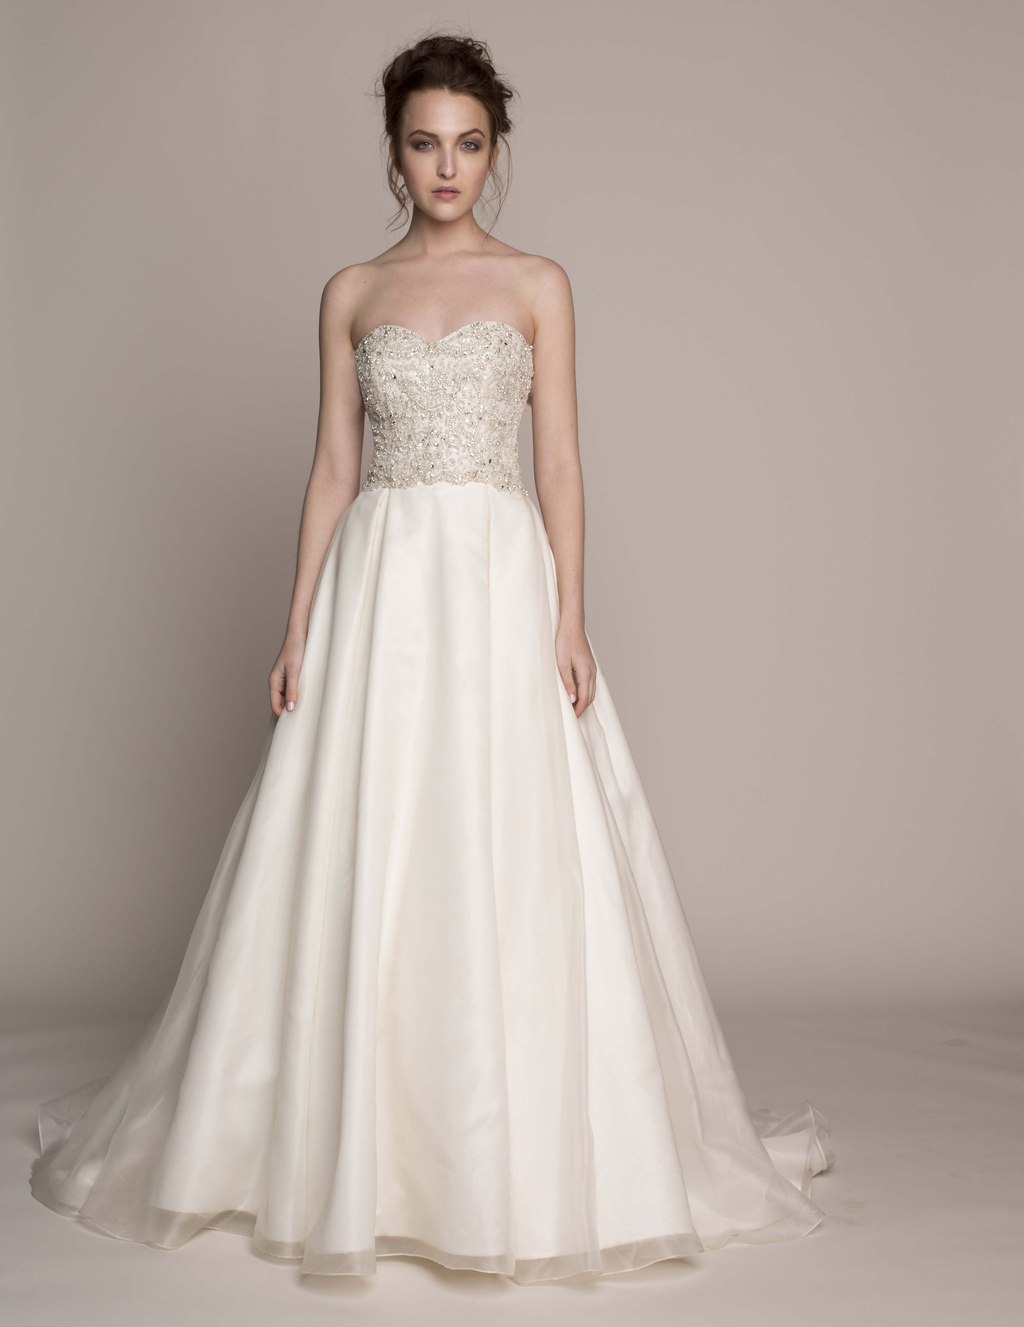 Kelly-faetanini-wedding-dress-2014-spring-bridal-gown-collection-kenzie-strapless-front.full